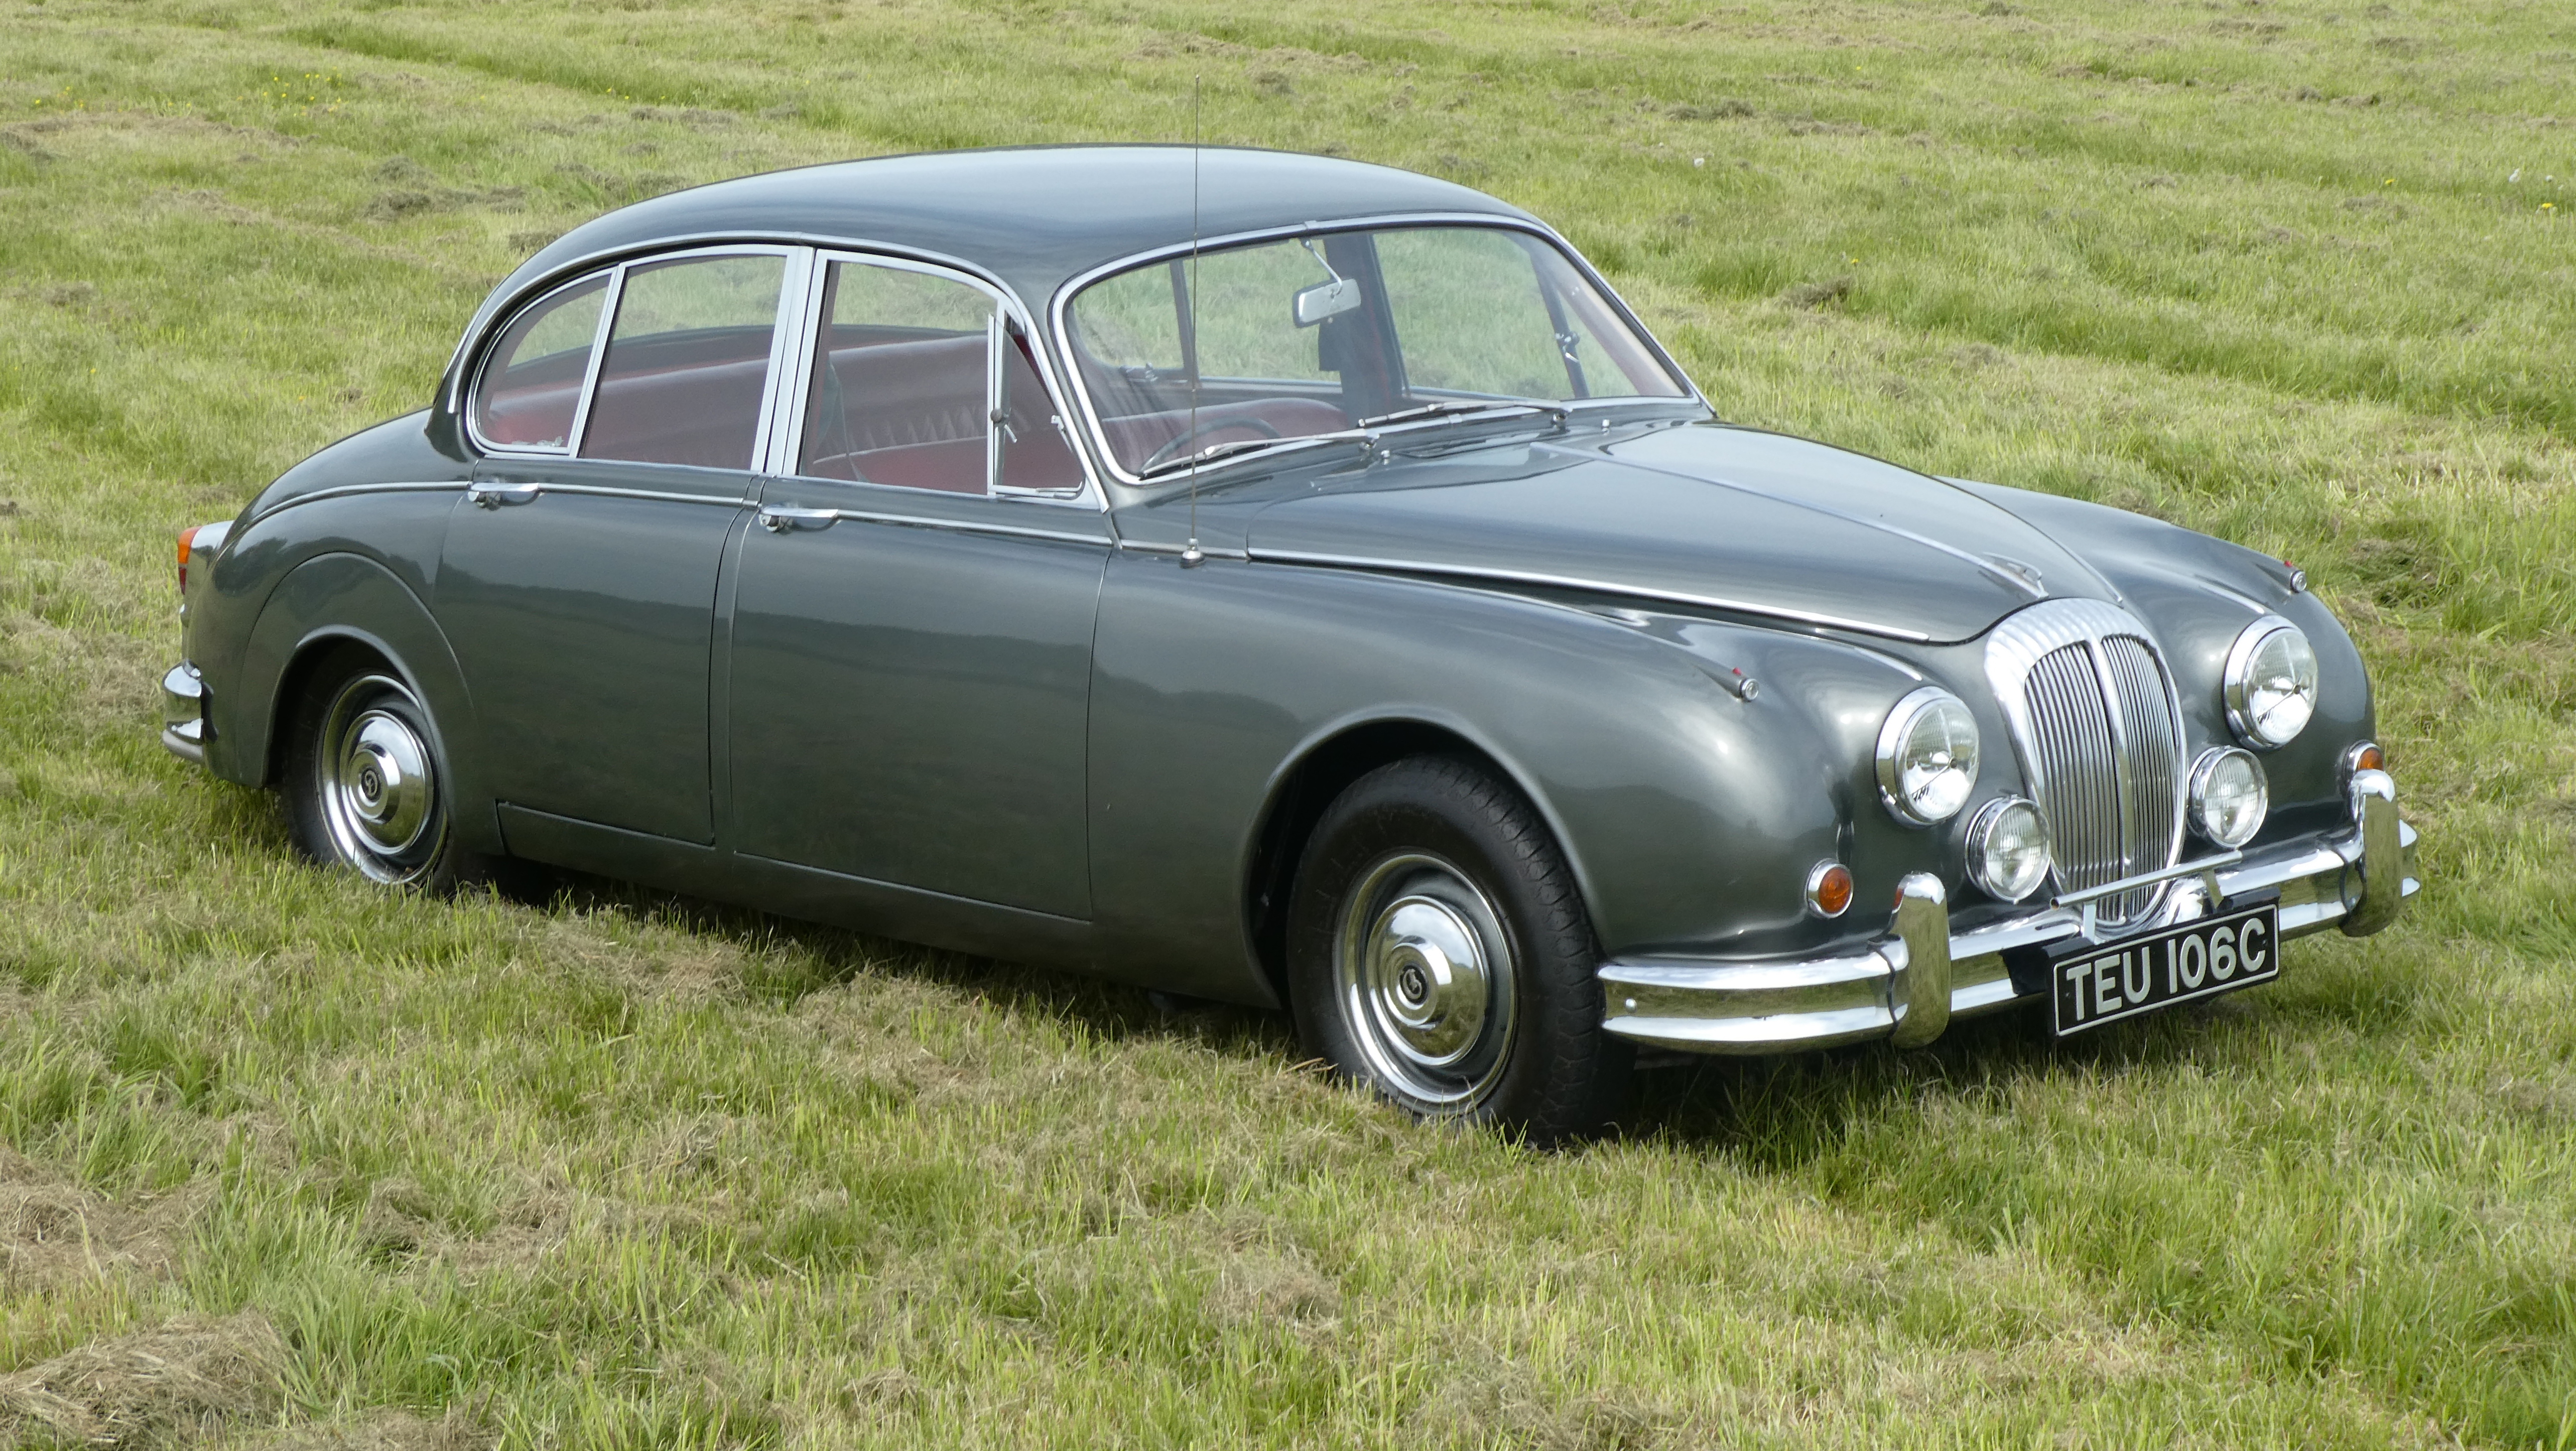 1965 Daimler 250 V8 Saloon 38,000miles only-Automatic for sale